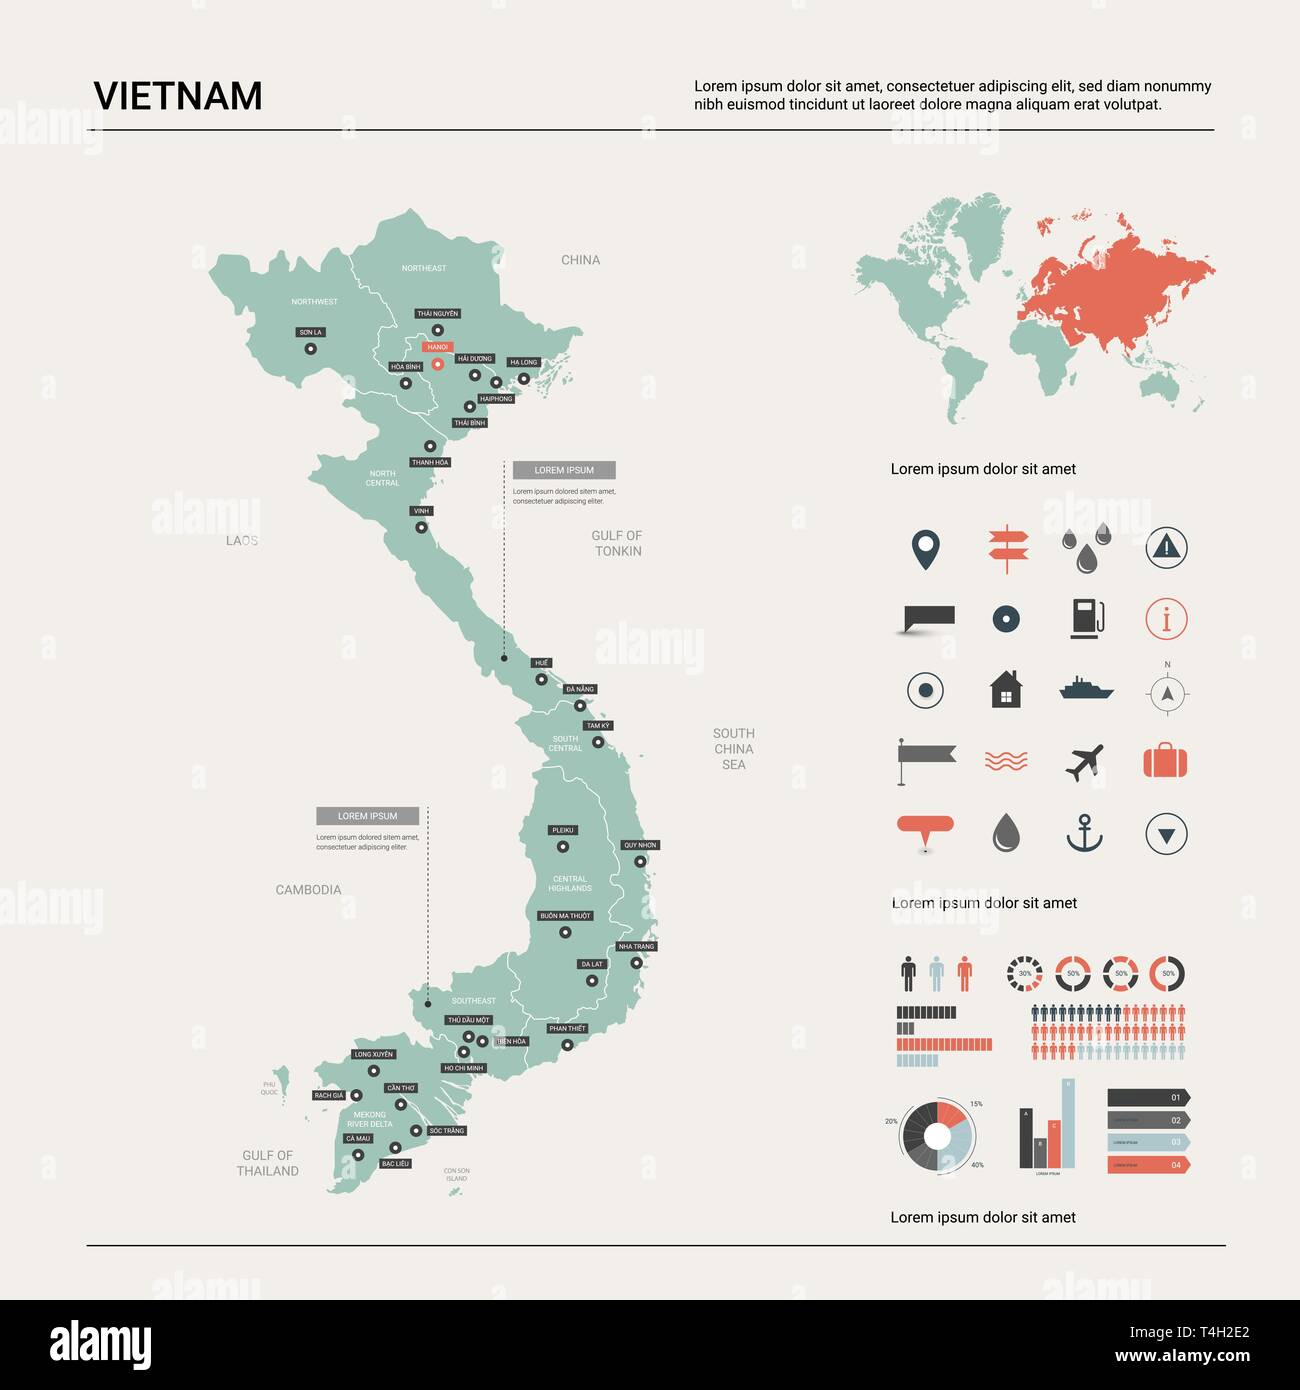 Vector Map Of Vietnam High Detailed Country Map With Division Cities And Capital Hanoi Political Map World Map Infographic Elements Stock Vector Image Art Alamy